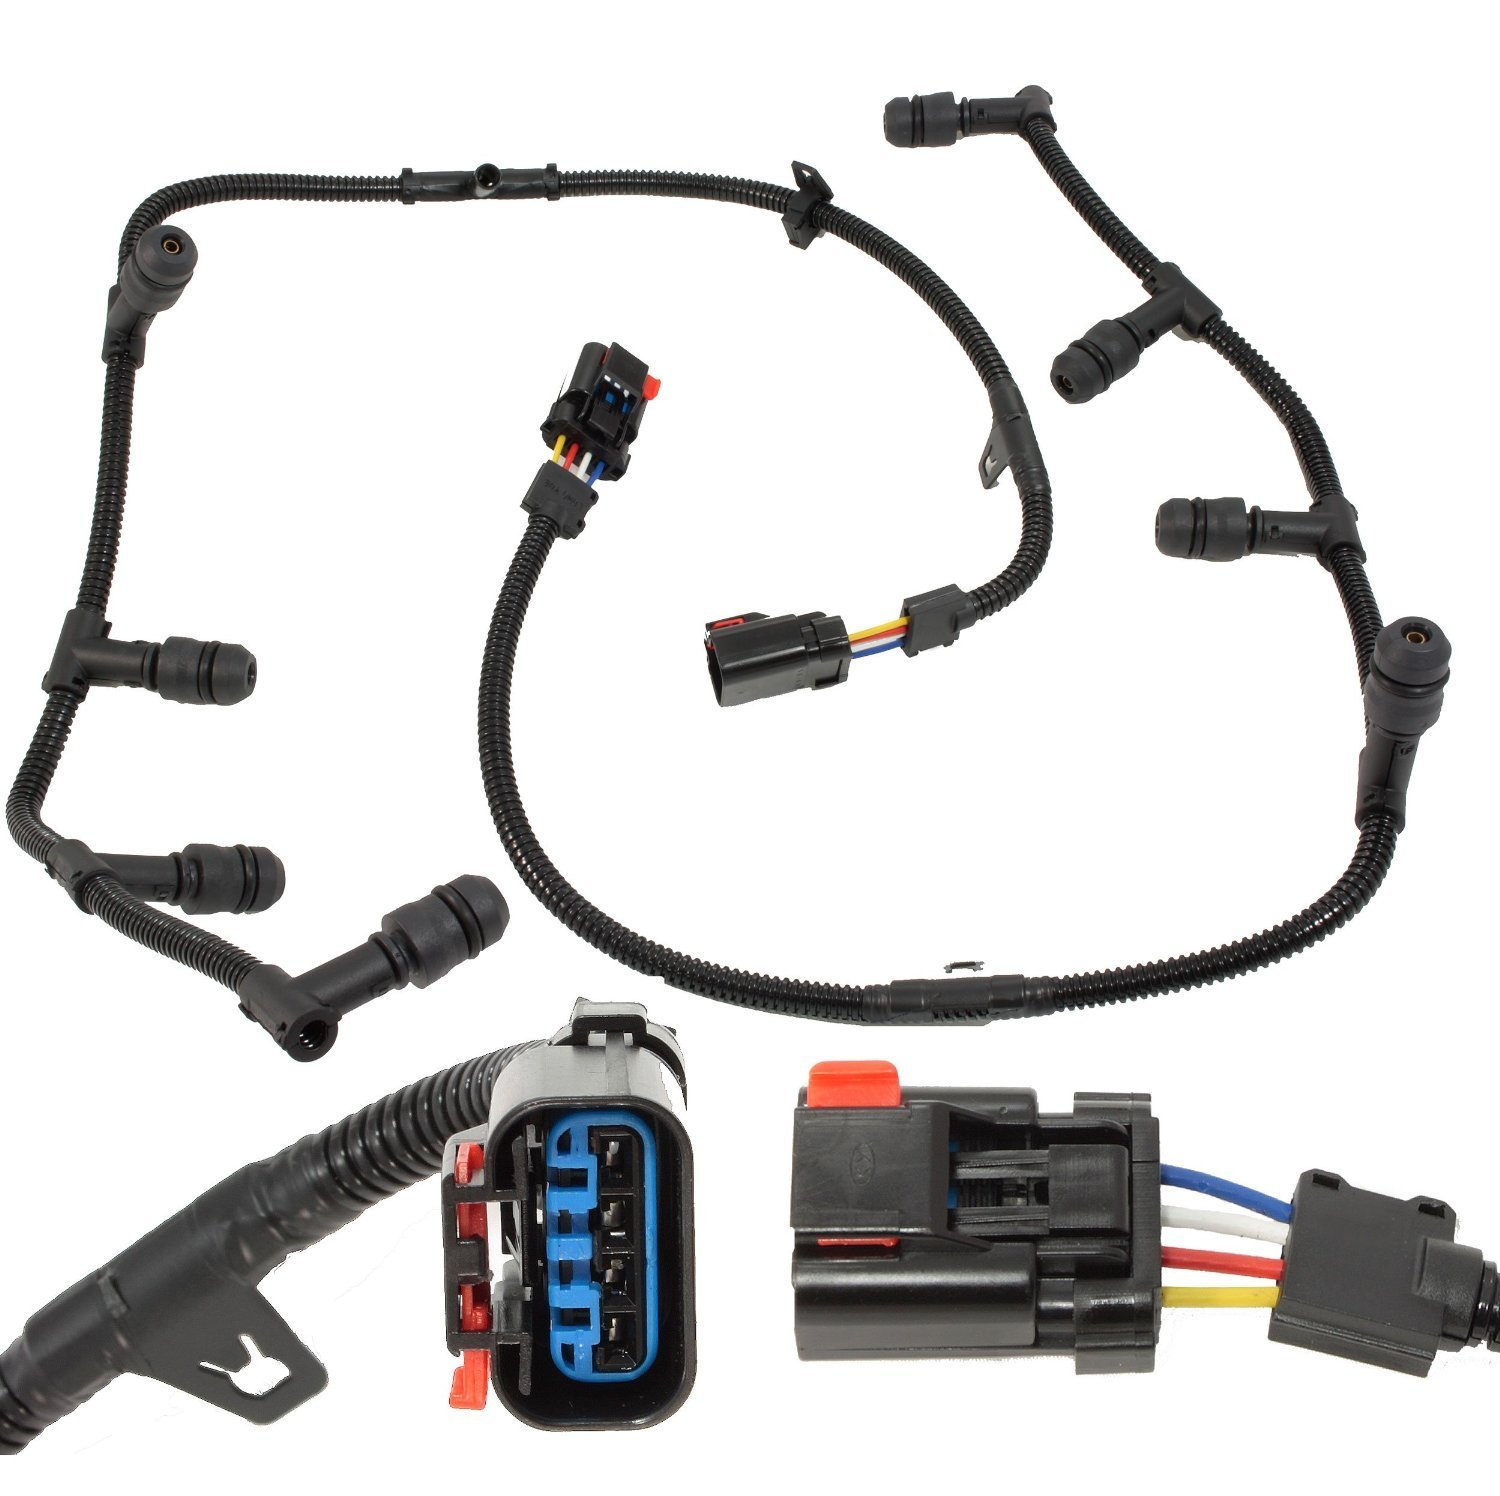 Michigan Motorsports Glow Plug Wiring Harness Assembly - Fits 2004-2010 Ford F250 F350 F450 F550 E250 E350 E450 Econoline Excursion with 6.0L Powerstroke Diesel